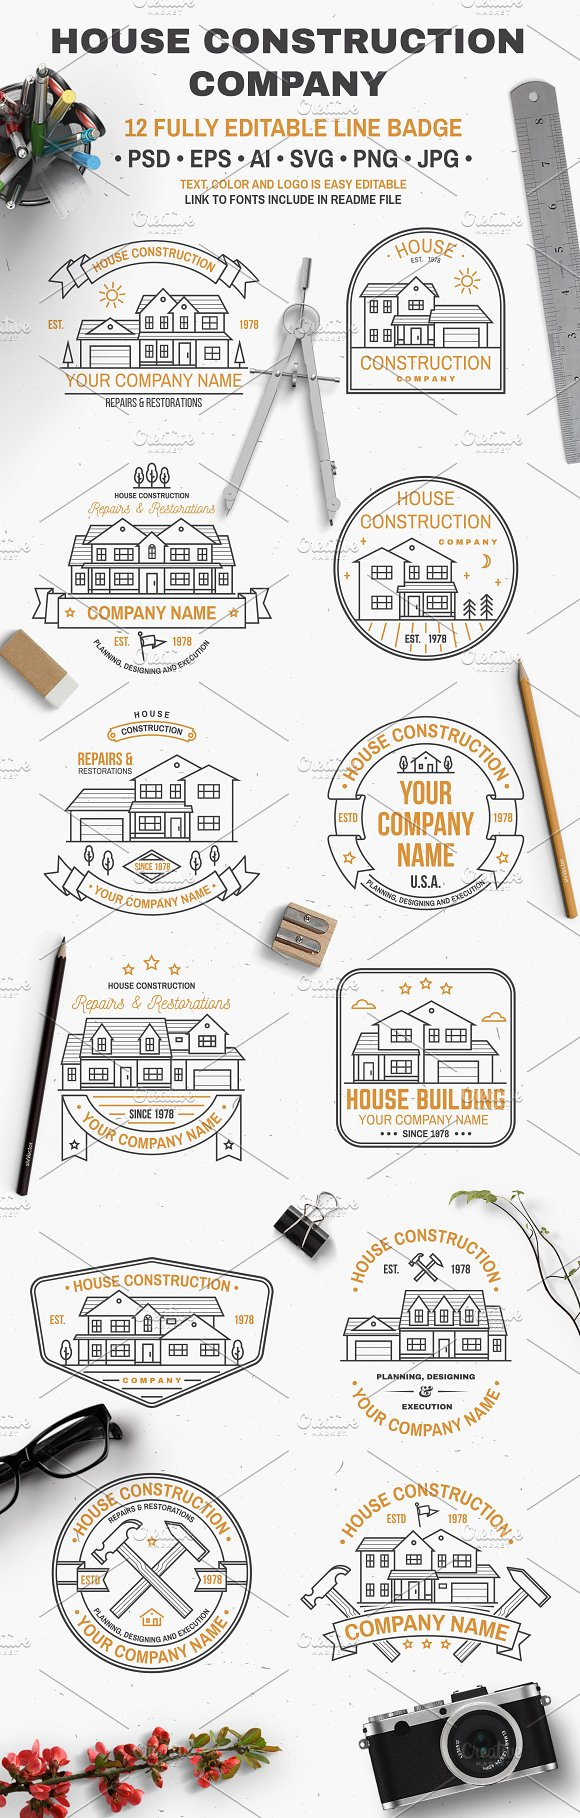 House Construction line badge in Logo Templates - product preview 1